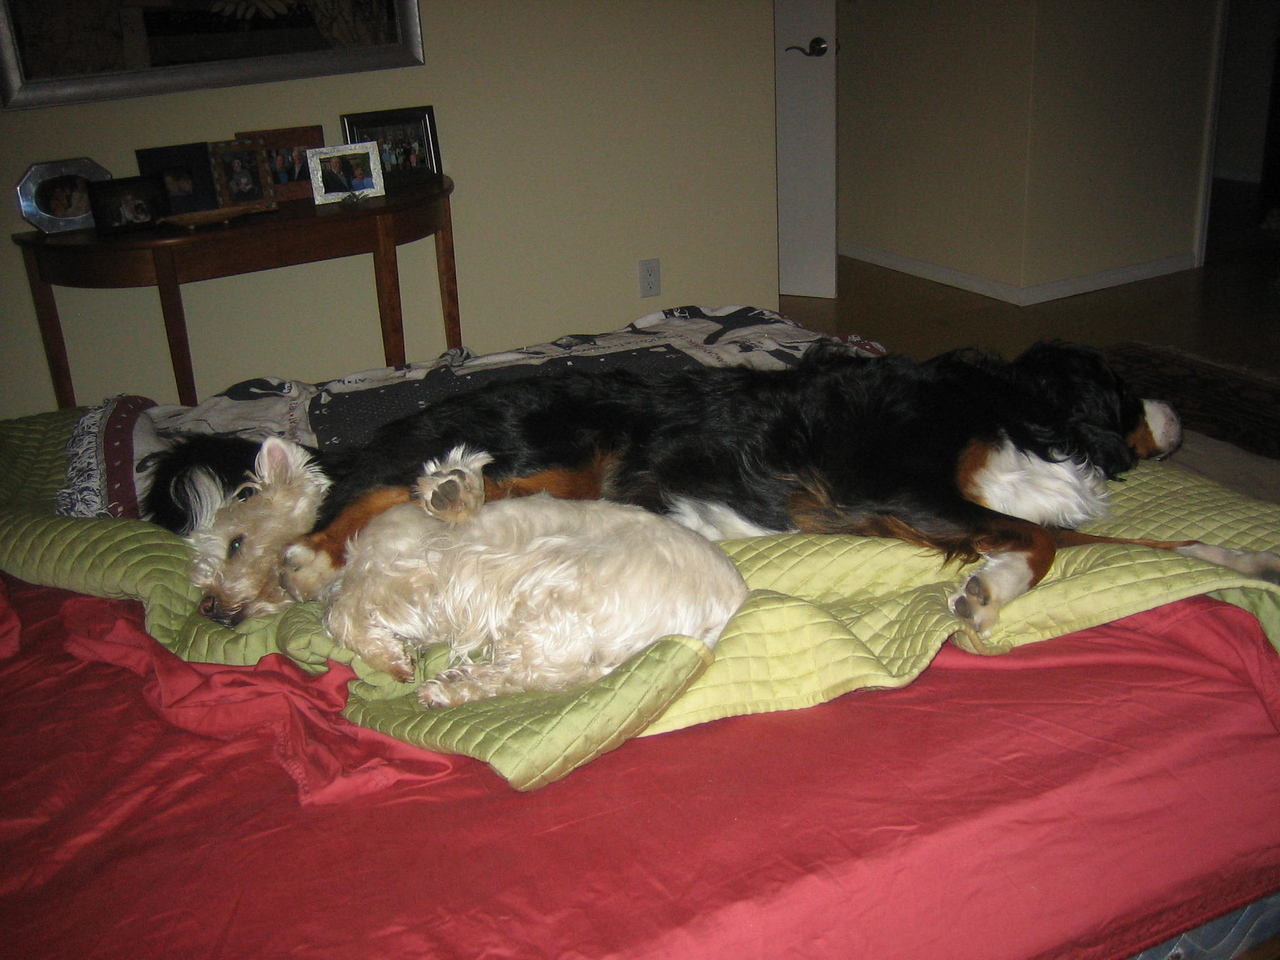 Gus and Noodles asleep on my bed